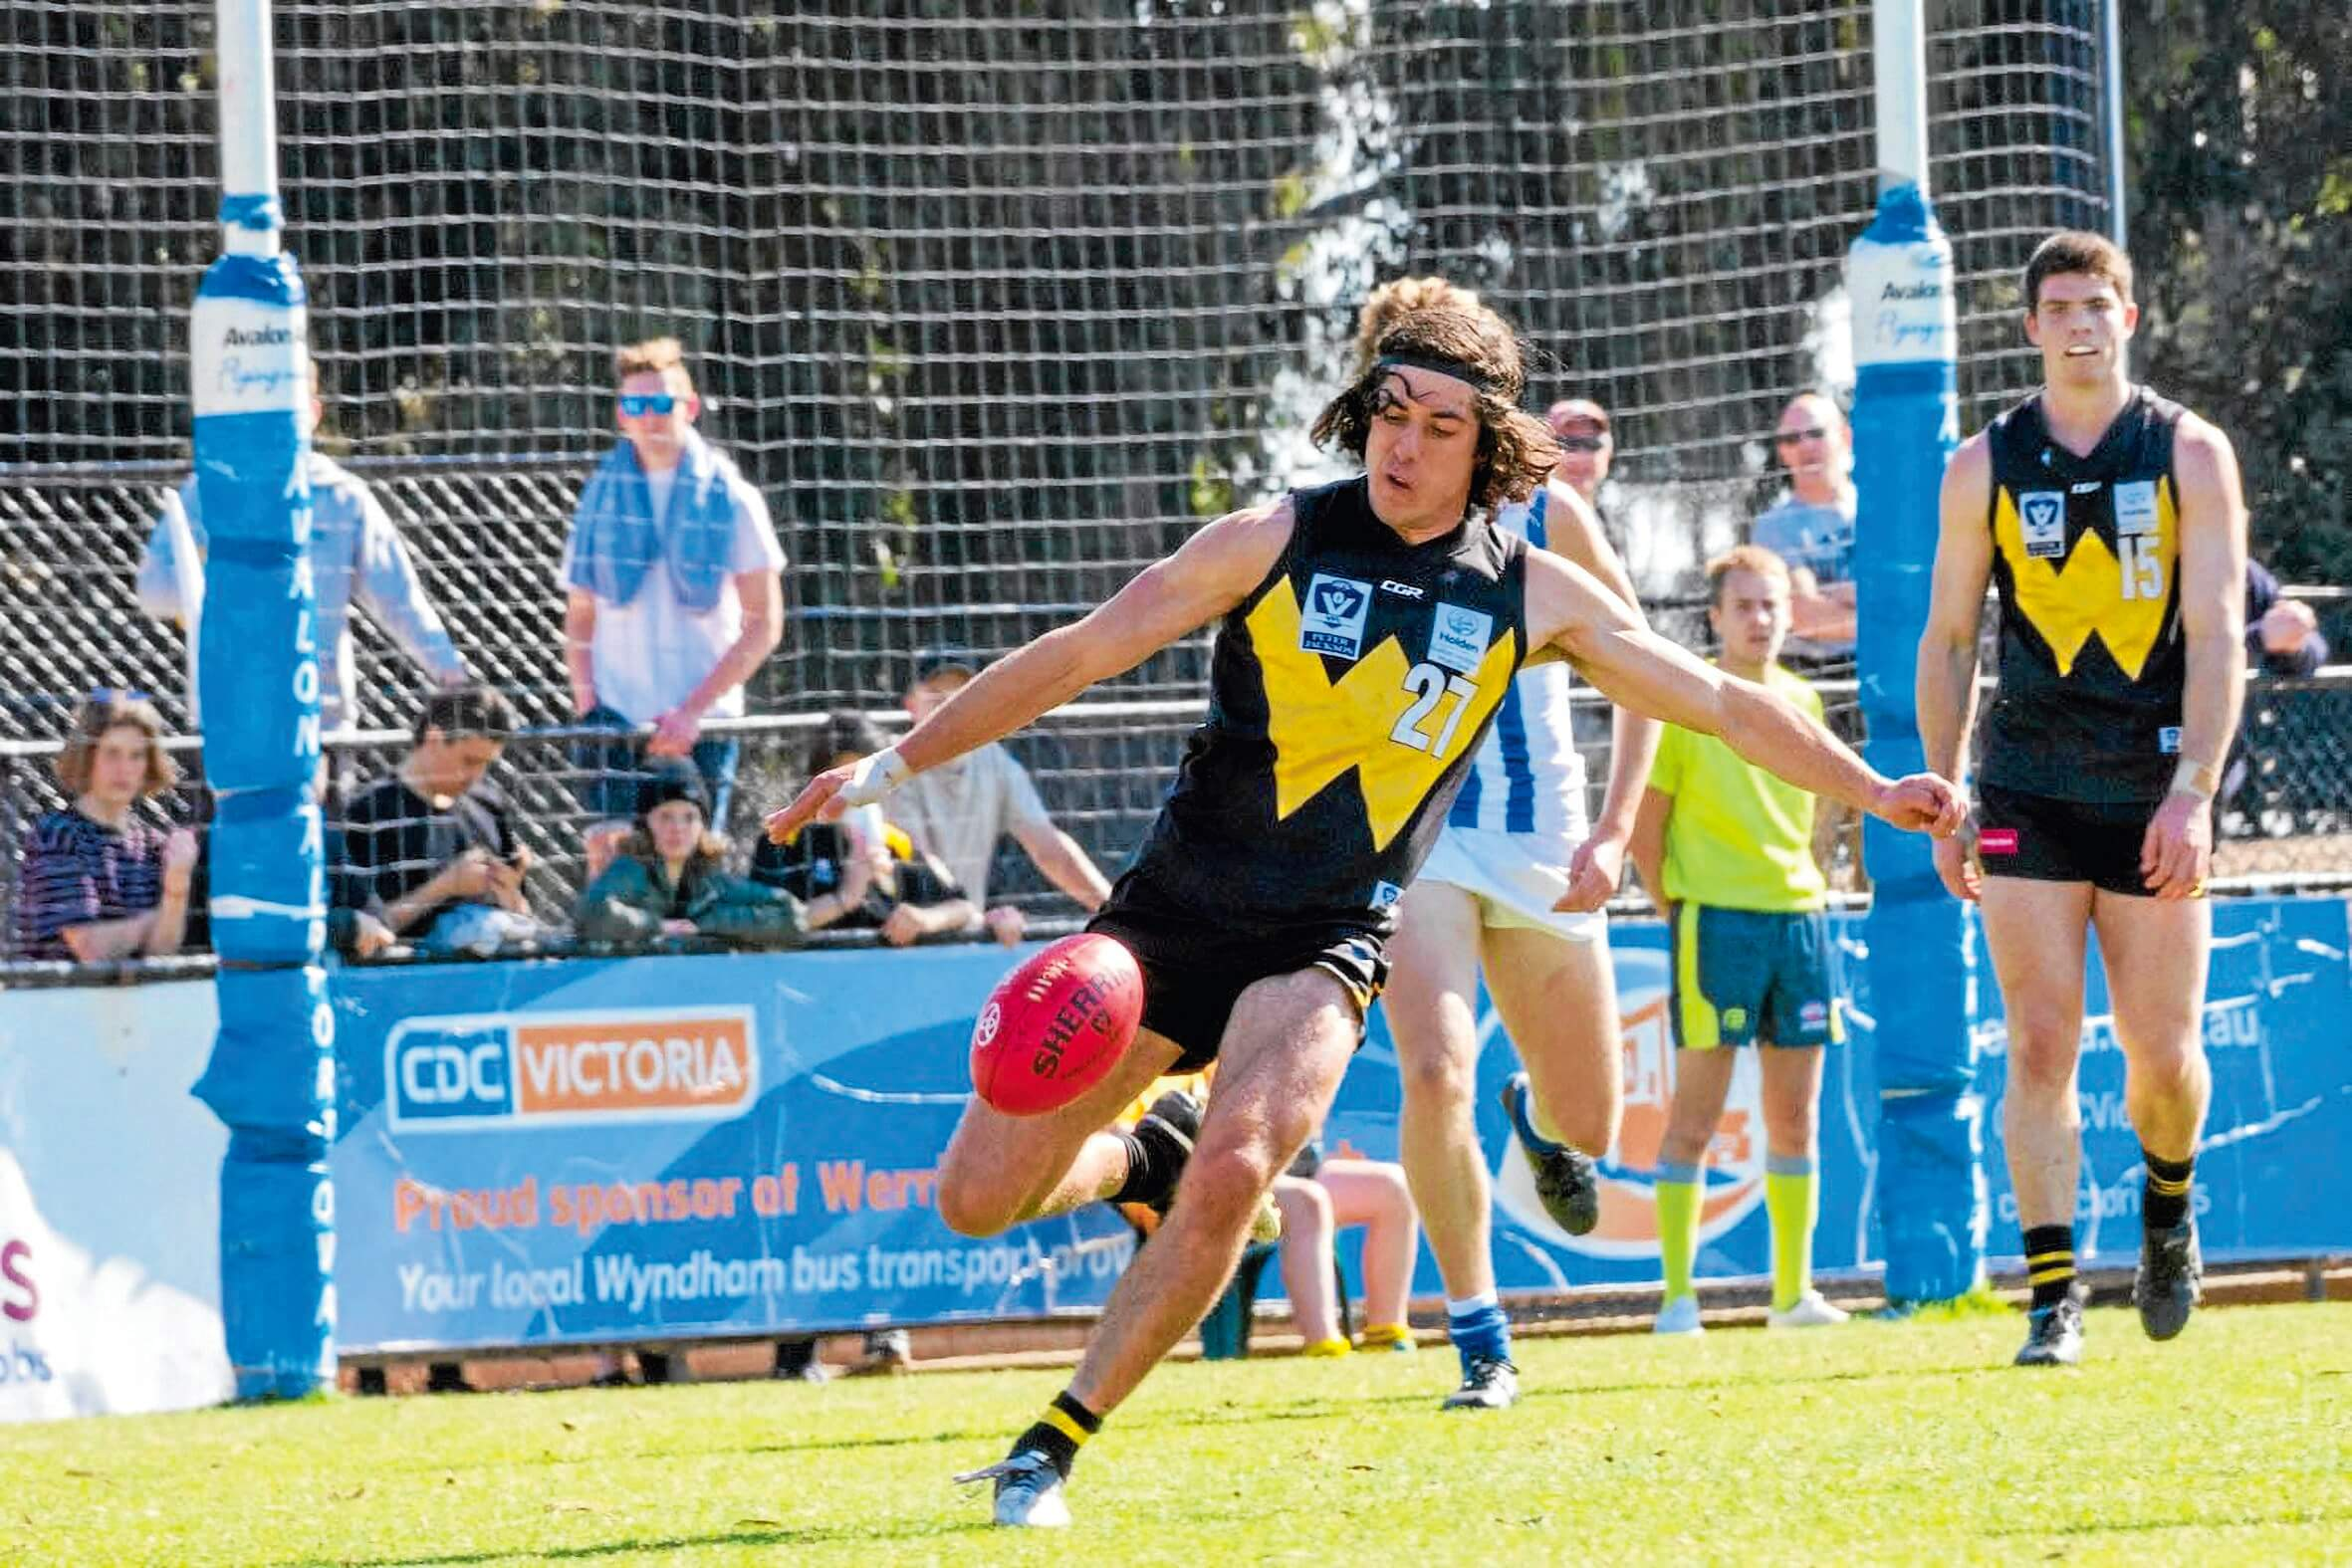 • Ethan Petterwood playing for Werribee in the VFL.